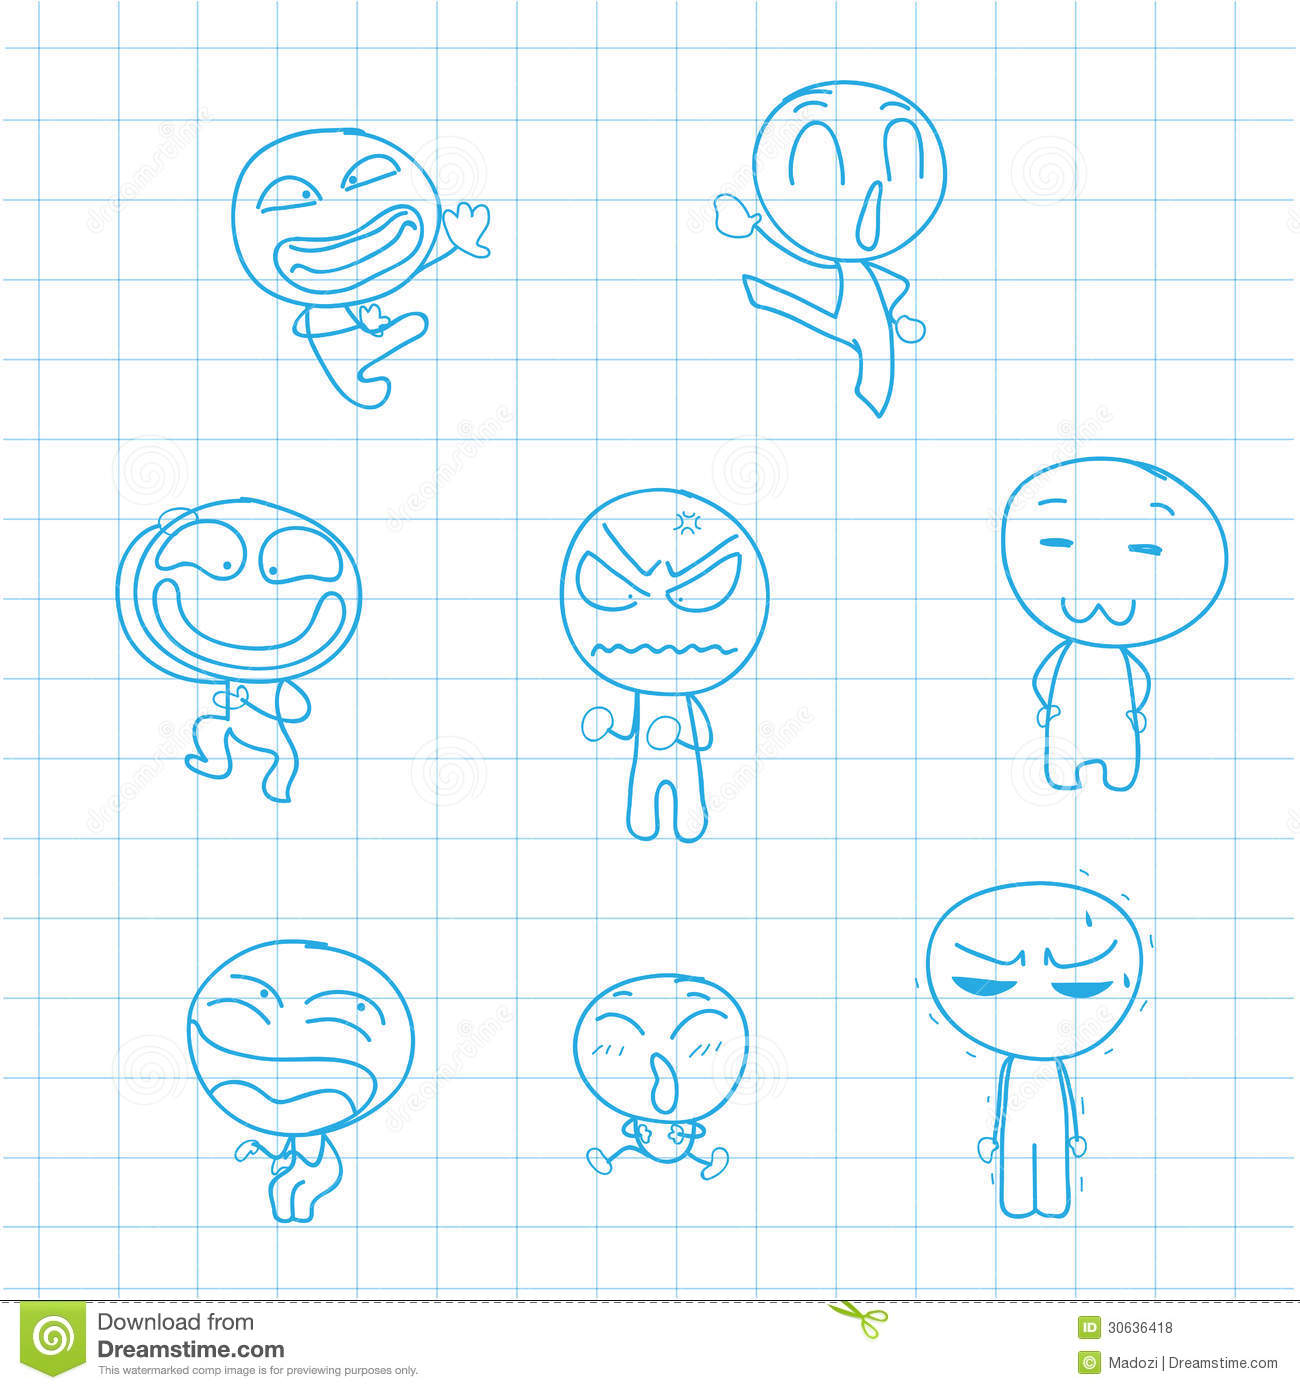 Drawing Line Graphs By Hand : Hand drawn emotion action cartoon stock vector image